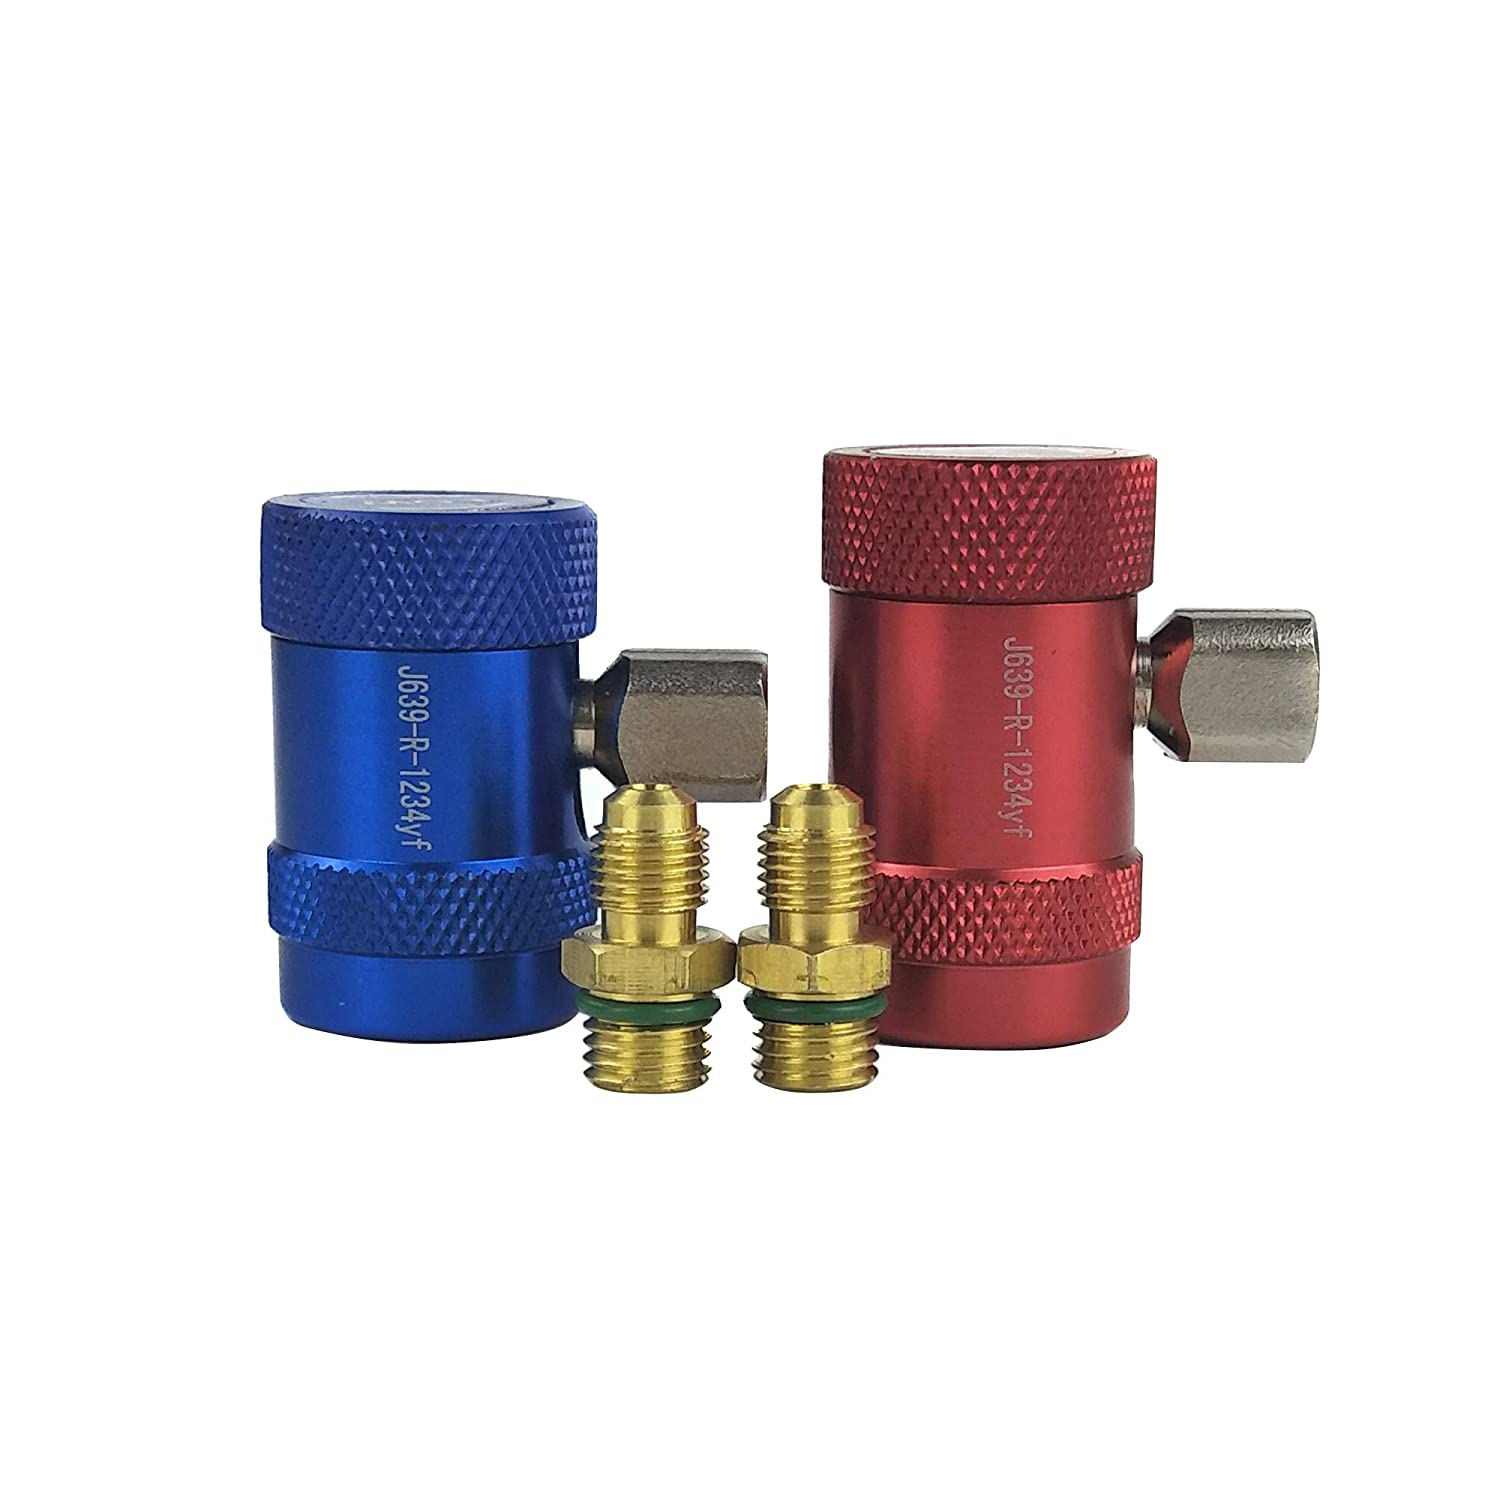 Wisepick AC Compressor R1234yf Quick Manual Coupler Connector Adapter